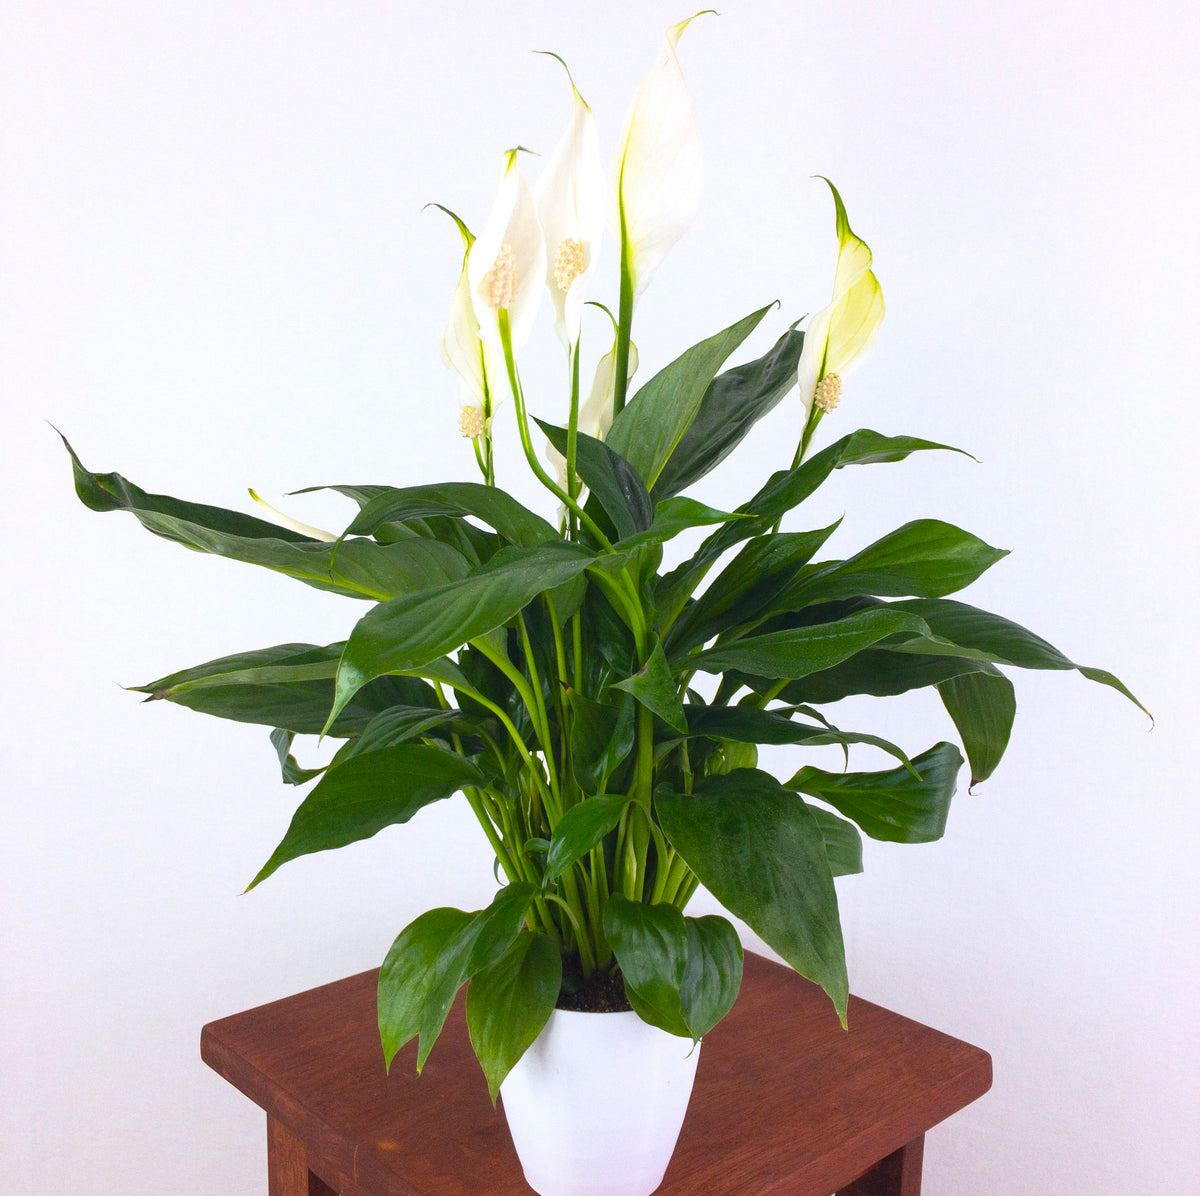 Medium Peace Lily (Spathiphyllum) in 4 on peace lily family plant, chinese evergreen house plant, droopy peace lily plant, funeral peace lily plant, peace lily potted plant, peace lily plant benefits, classic peace lily plant, black bamboo potted plant, white and green leaves house plant, croton house plant, peace plant brown leaves, dragon plant, holly house plant, zamiifolia house plant, problems with peace lily plant, weeping fig house plant, marginata house plant, artificial bamboo house plant, black gold lily plant, pineapple plant house plant,